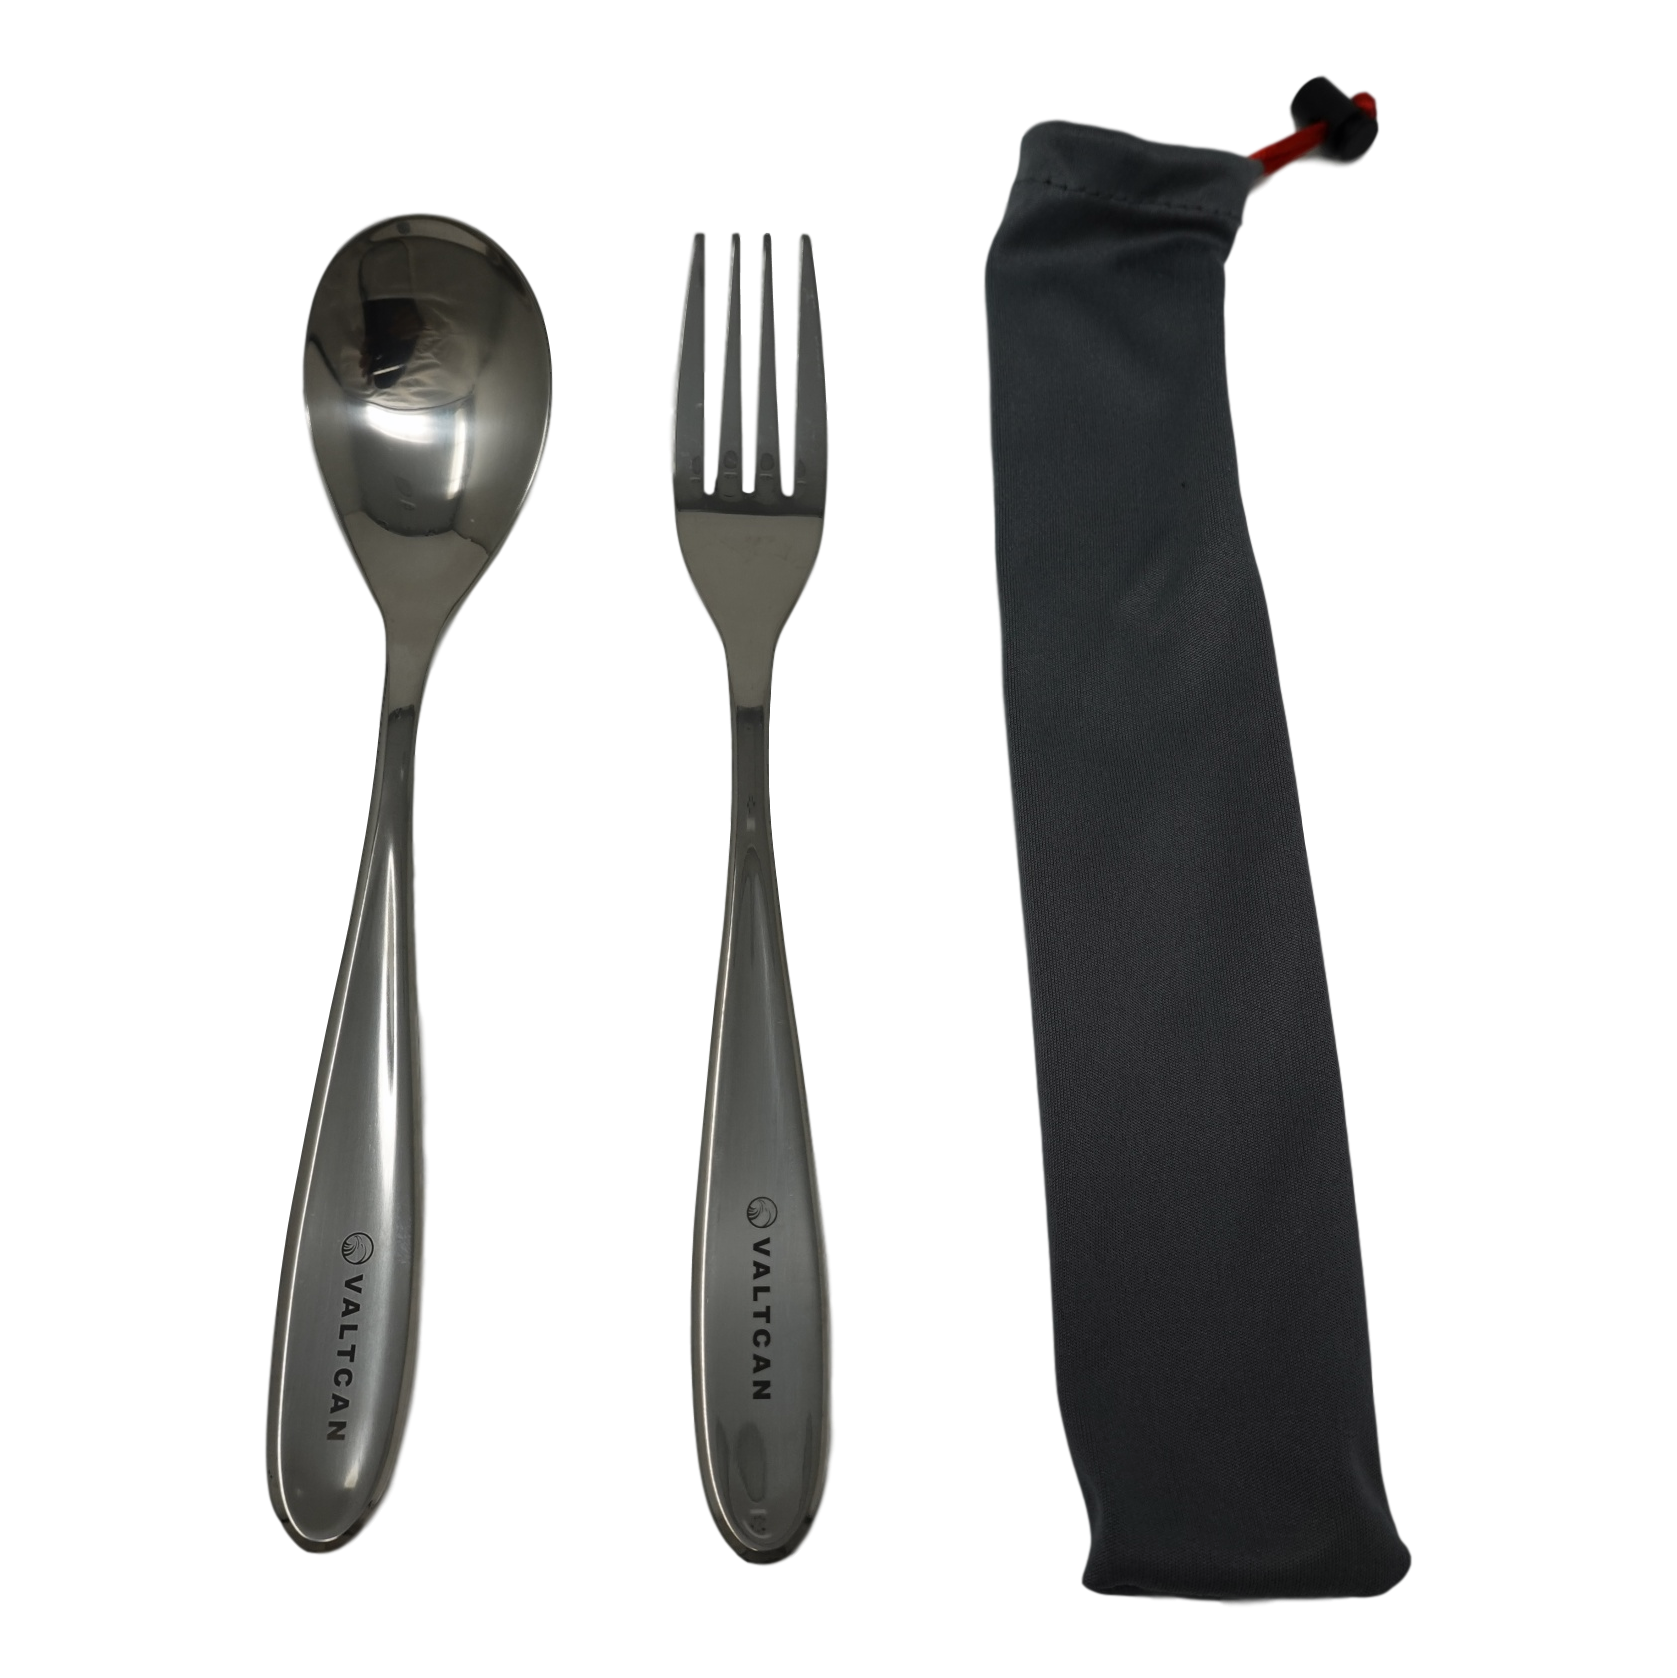 Valtcan Titanium Fork and Spoon Kitchen Flatware Full Length 8 inch Polished